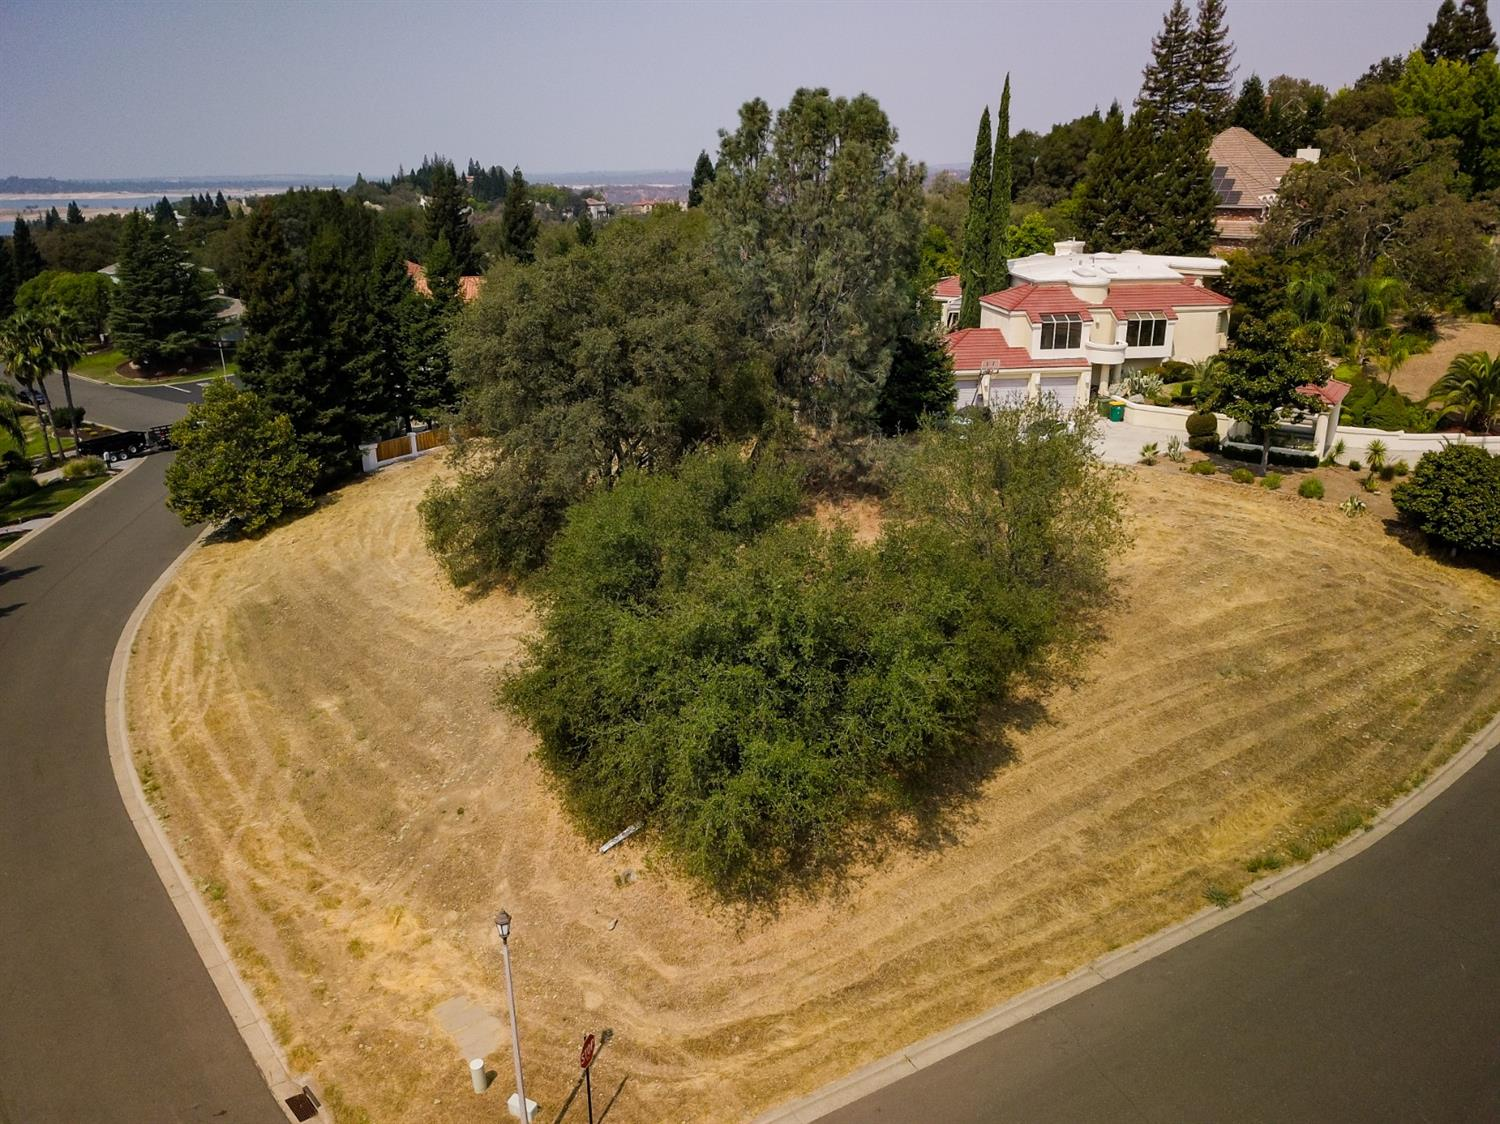 Build your dream home among million dollar custom homes within the prestigious Summit community. A highly desired lot w/building plans await! Short walking distance to scenic trails leading to Folsom Lake. Lots are scarce don't bypass this unique opportunity!